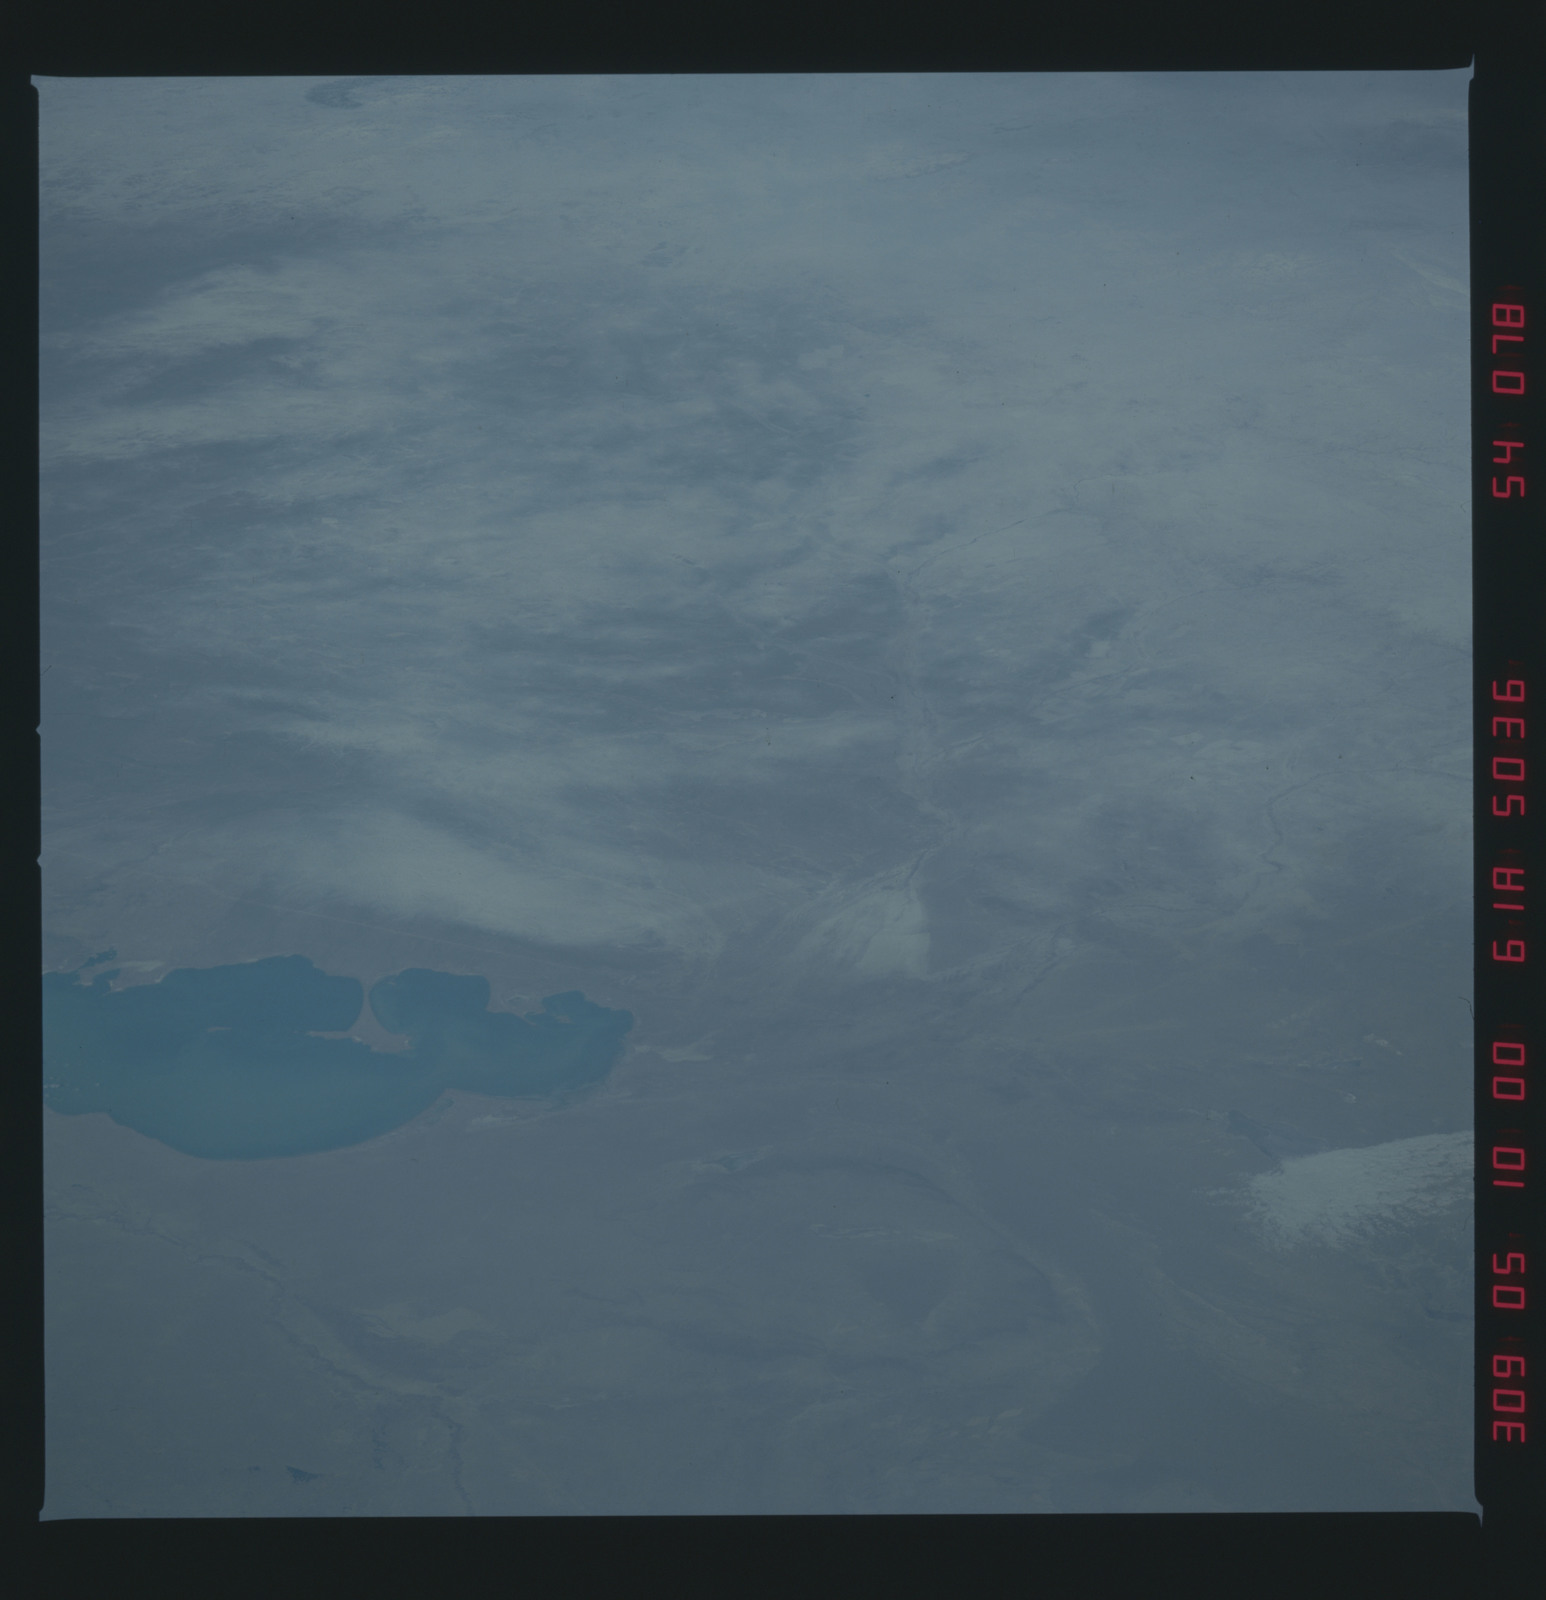 61A-54-078 - STS-61A - STS-61A earth observations